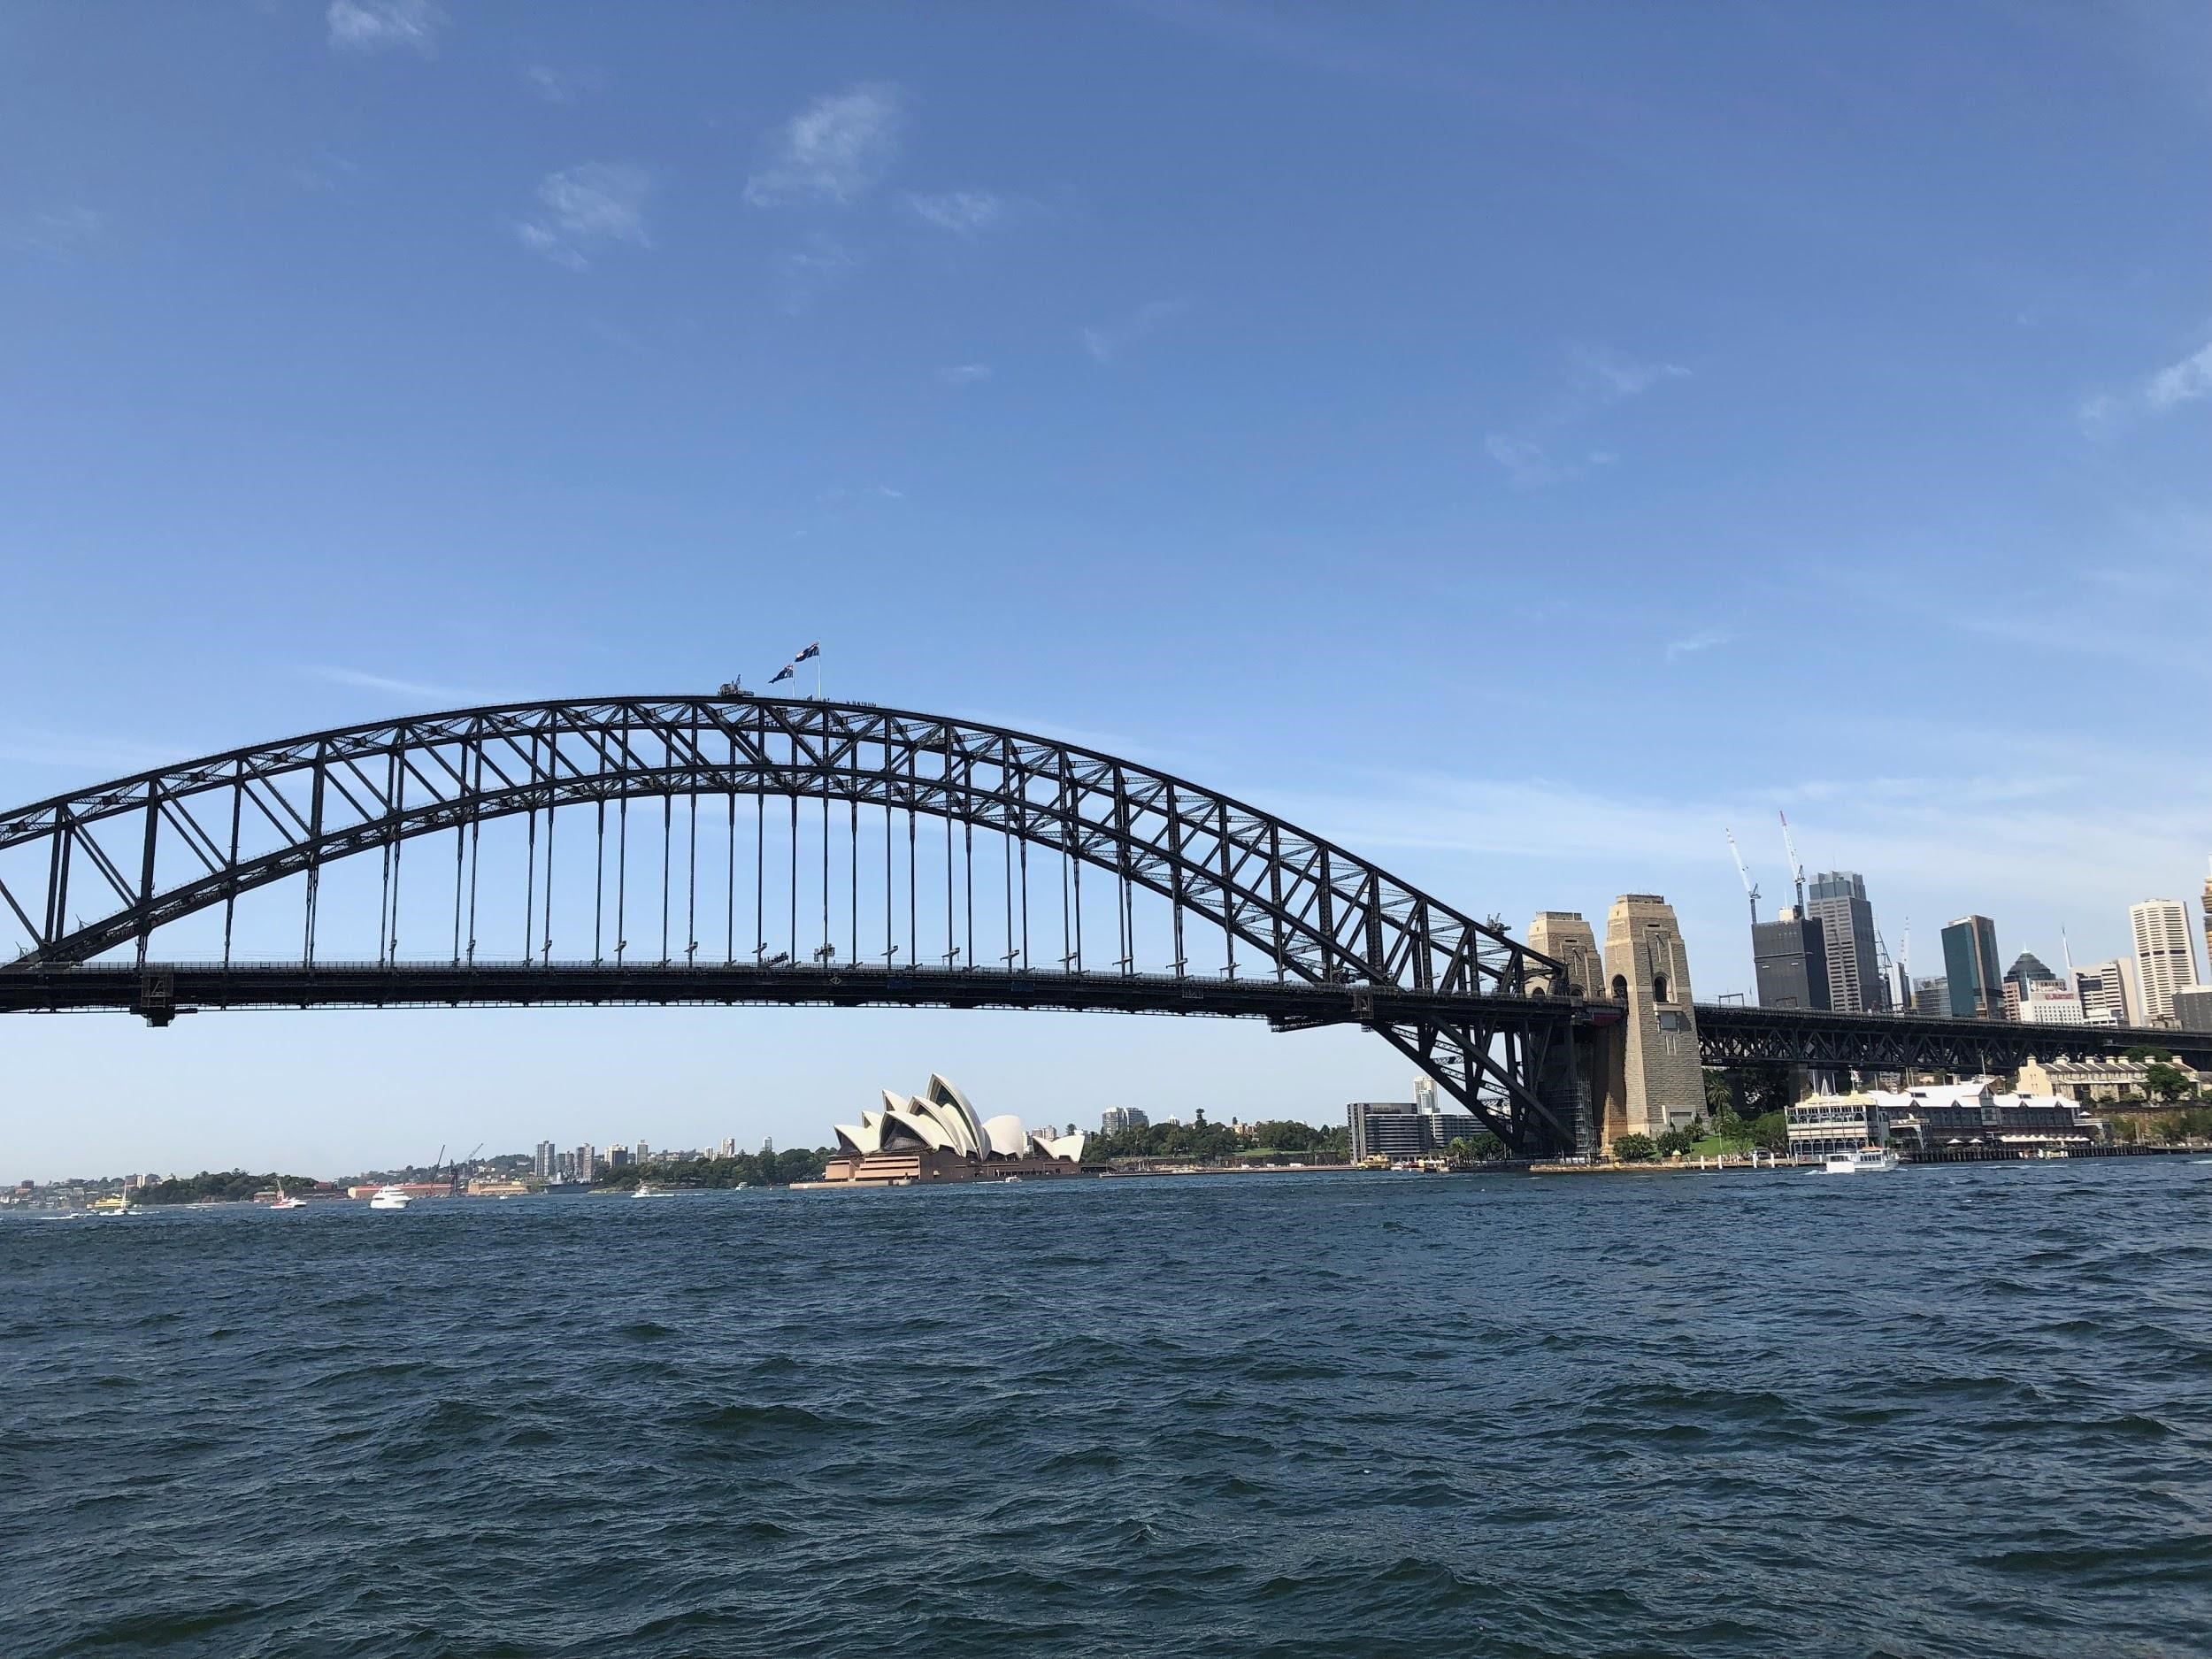 bridge with Sydney Opera House in background with blue sky